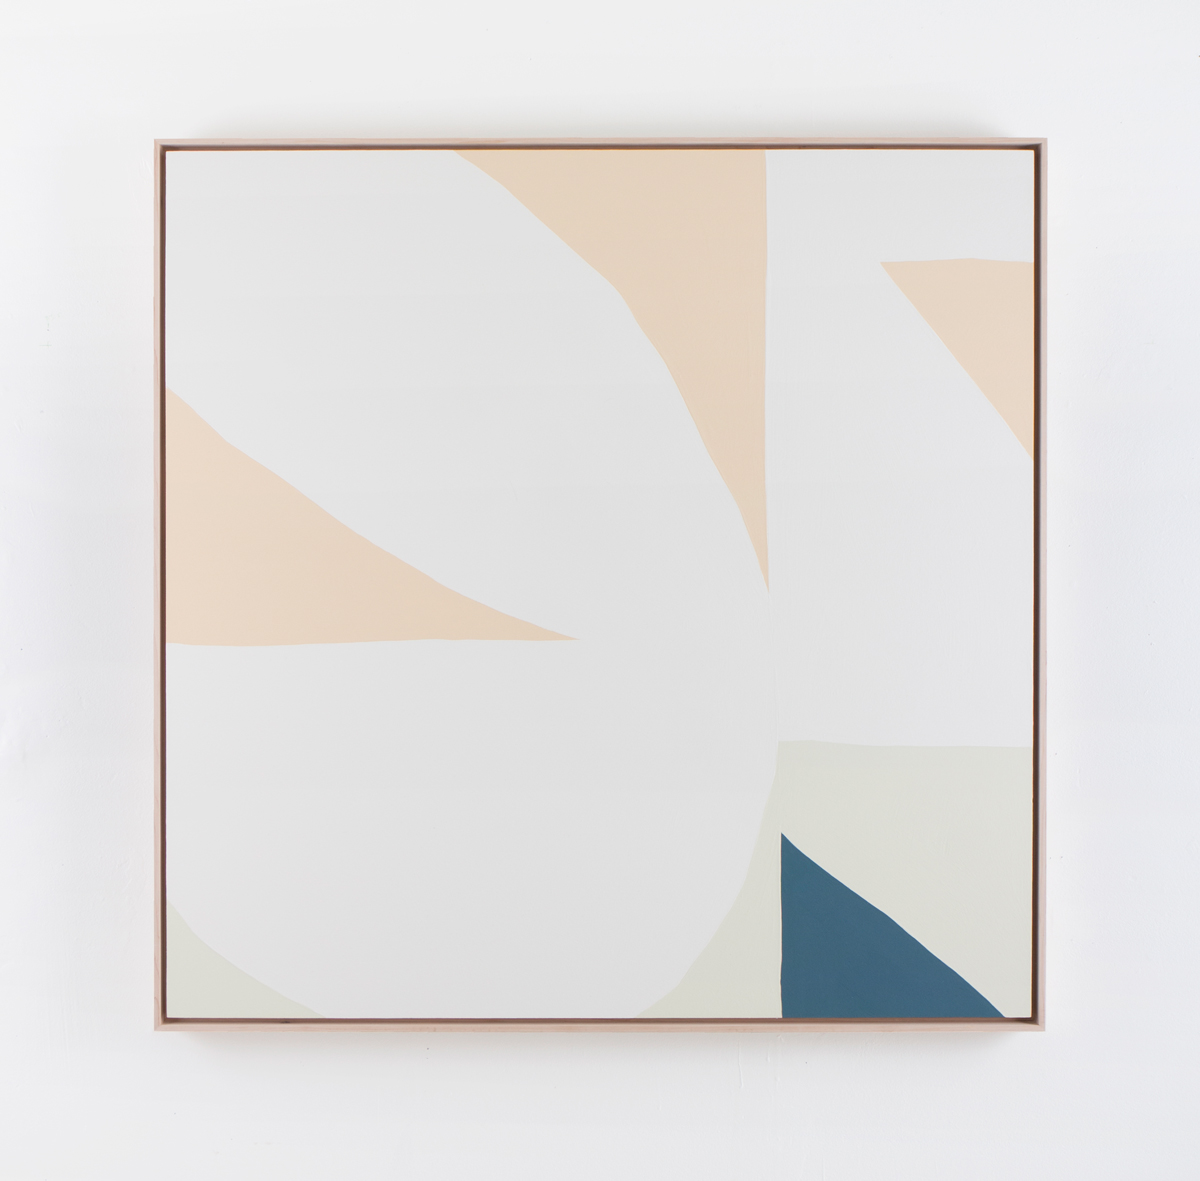 WhiteClover_2018_Acryliconpanel_36x36inches